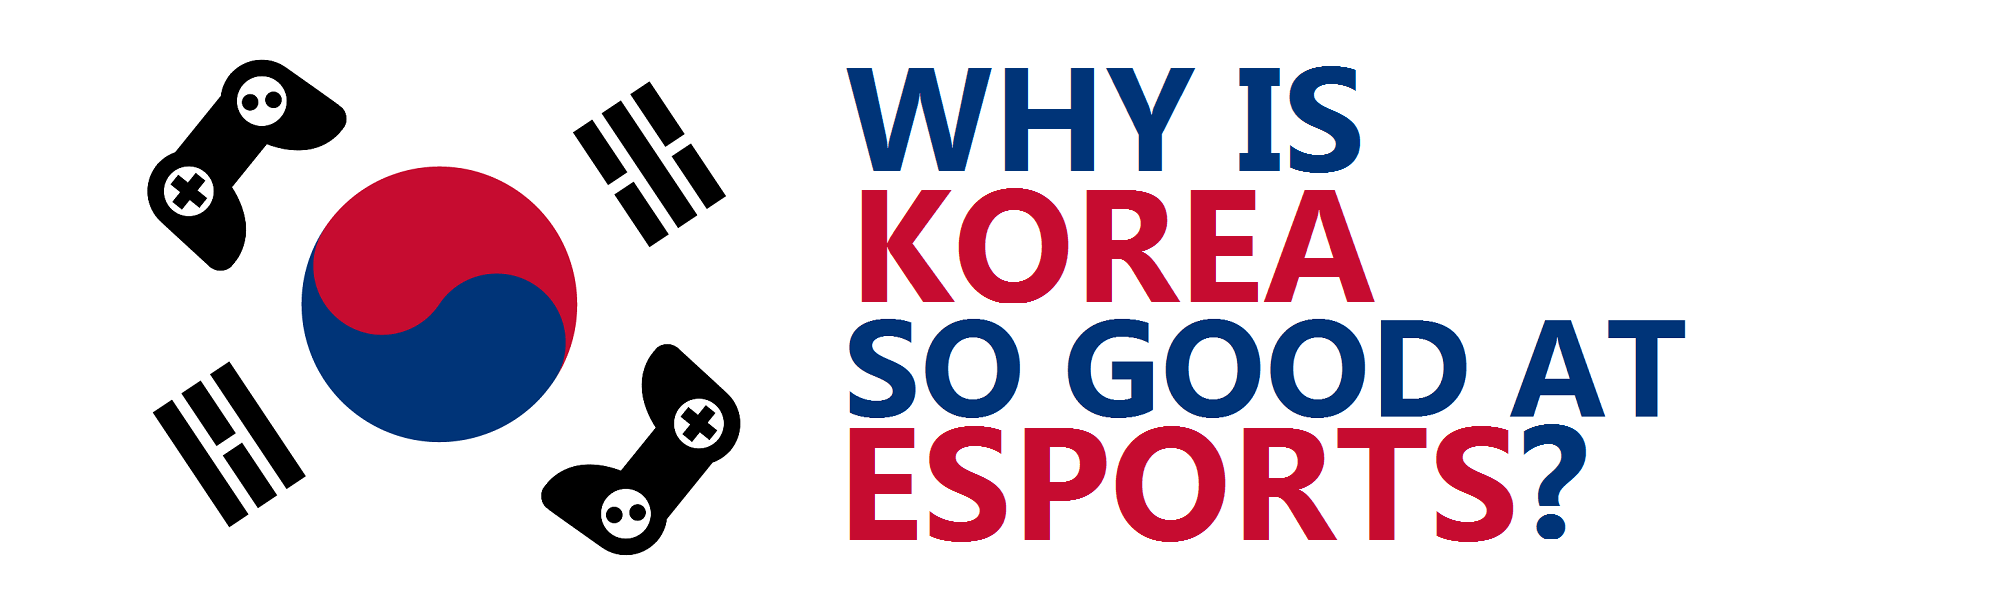 why is korea so good at esports ebuyer blog. Black Bedroom Furniture Sets. Home Design Ideas